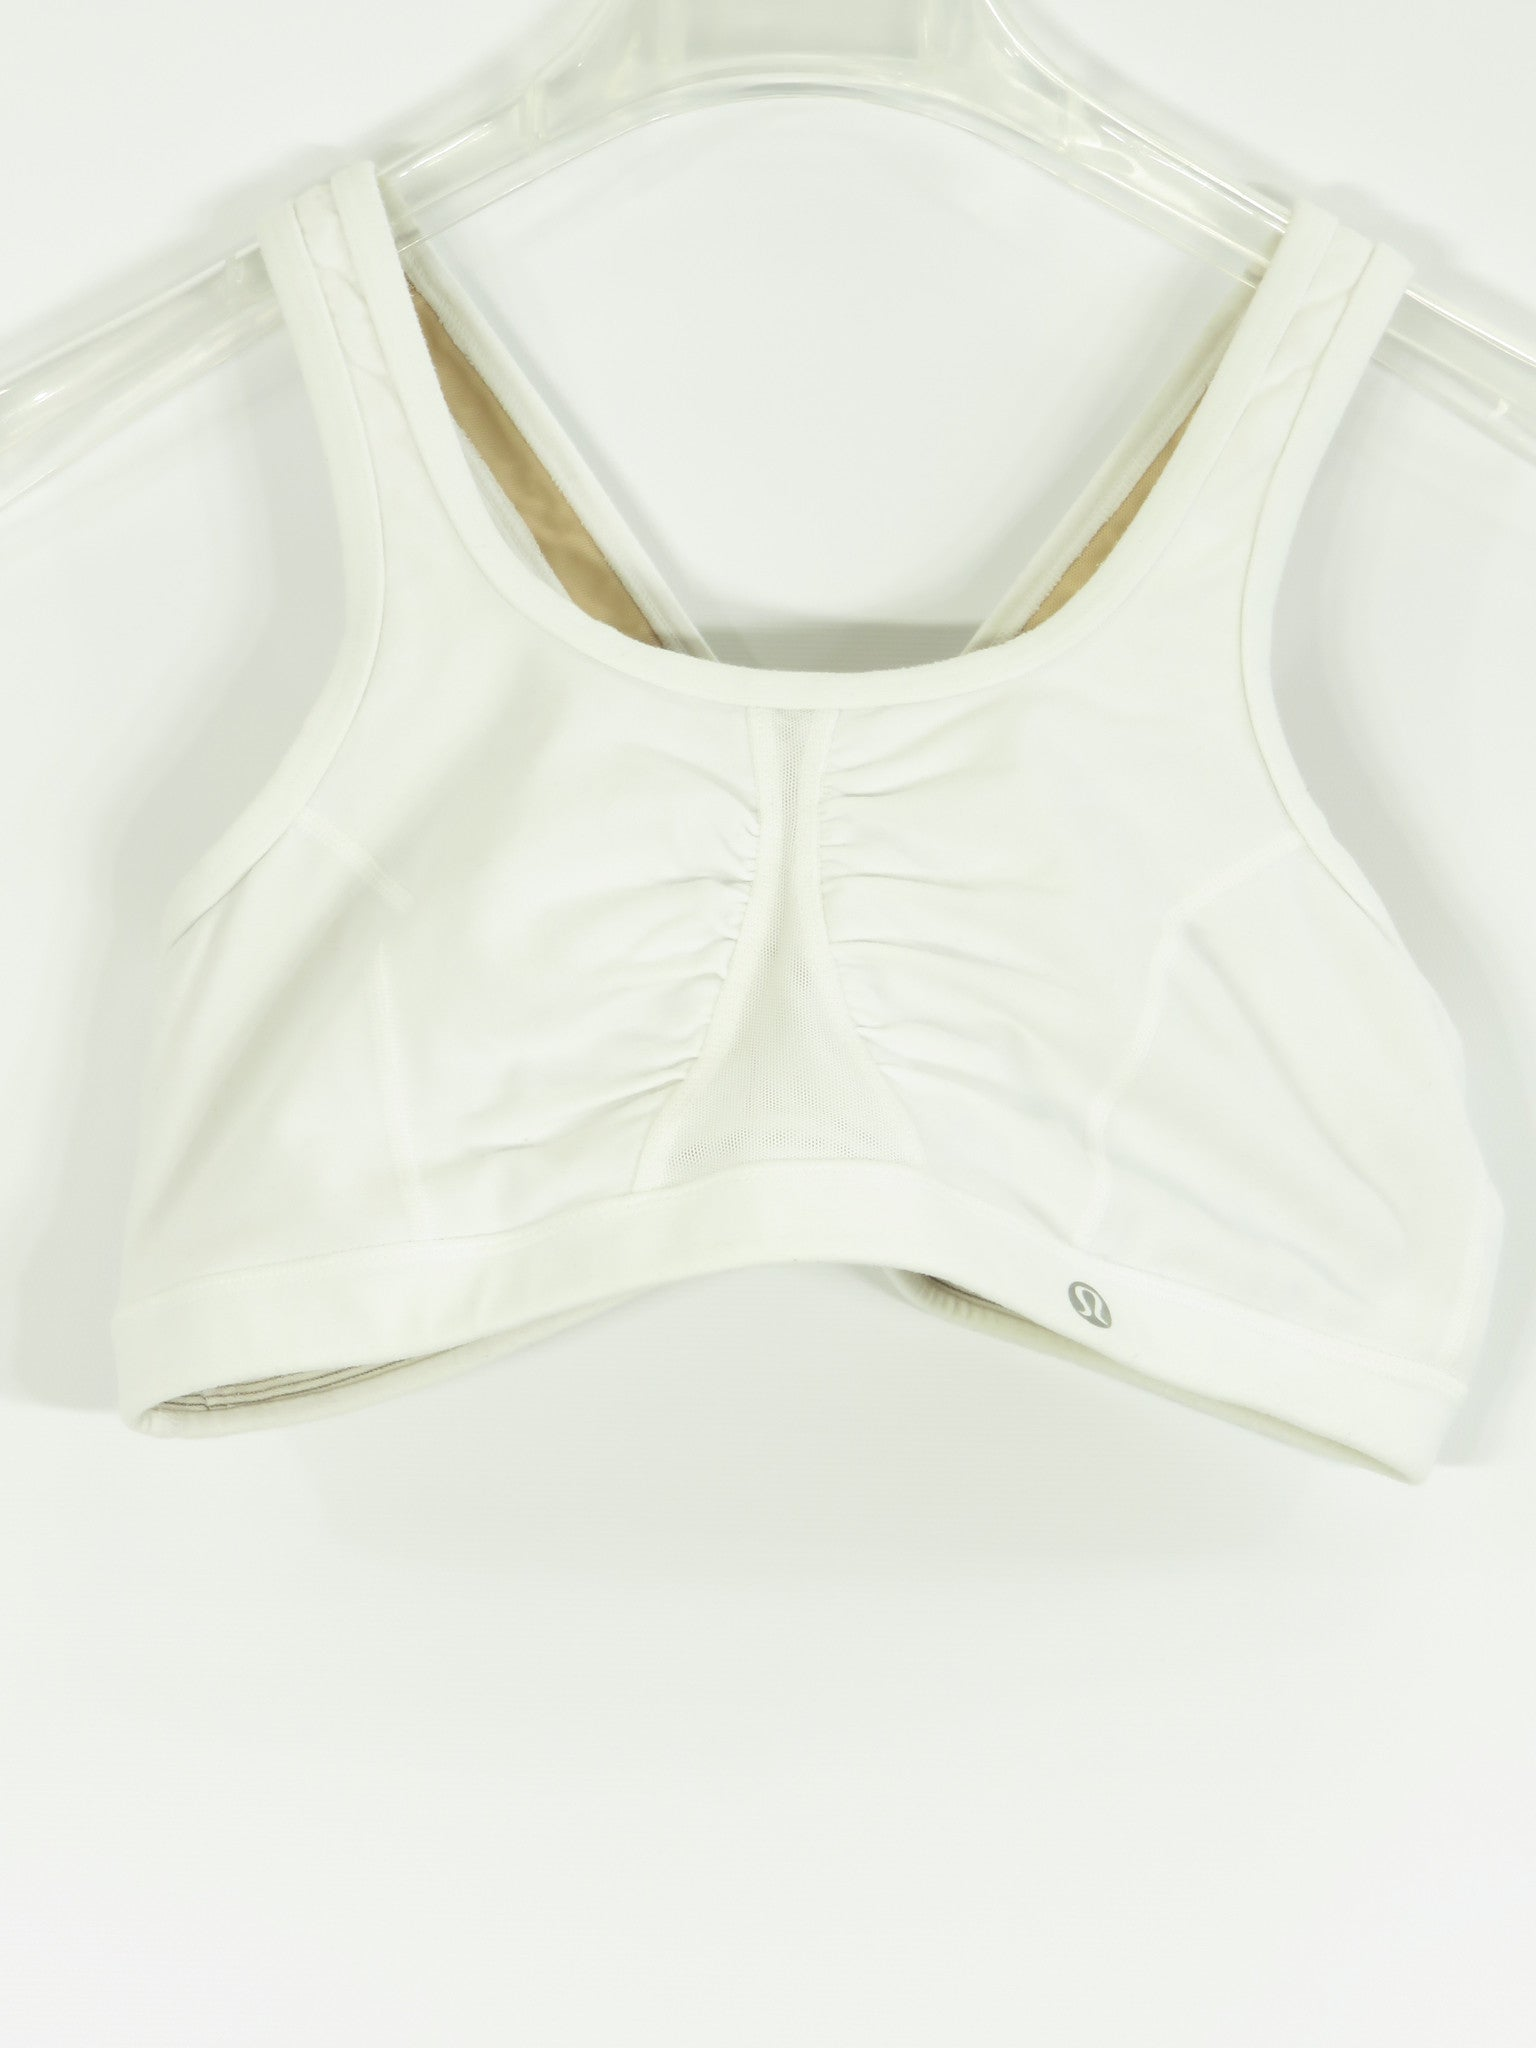 3caf48c473 LULULEMON ATHLETICA Women Off White Athletic Wear Criss Cross Back Spo